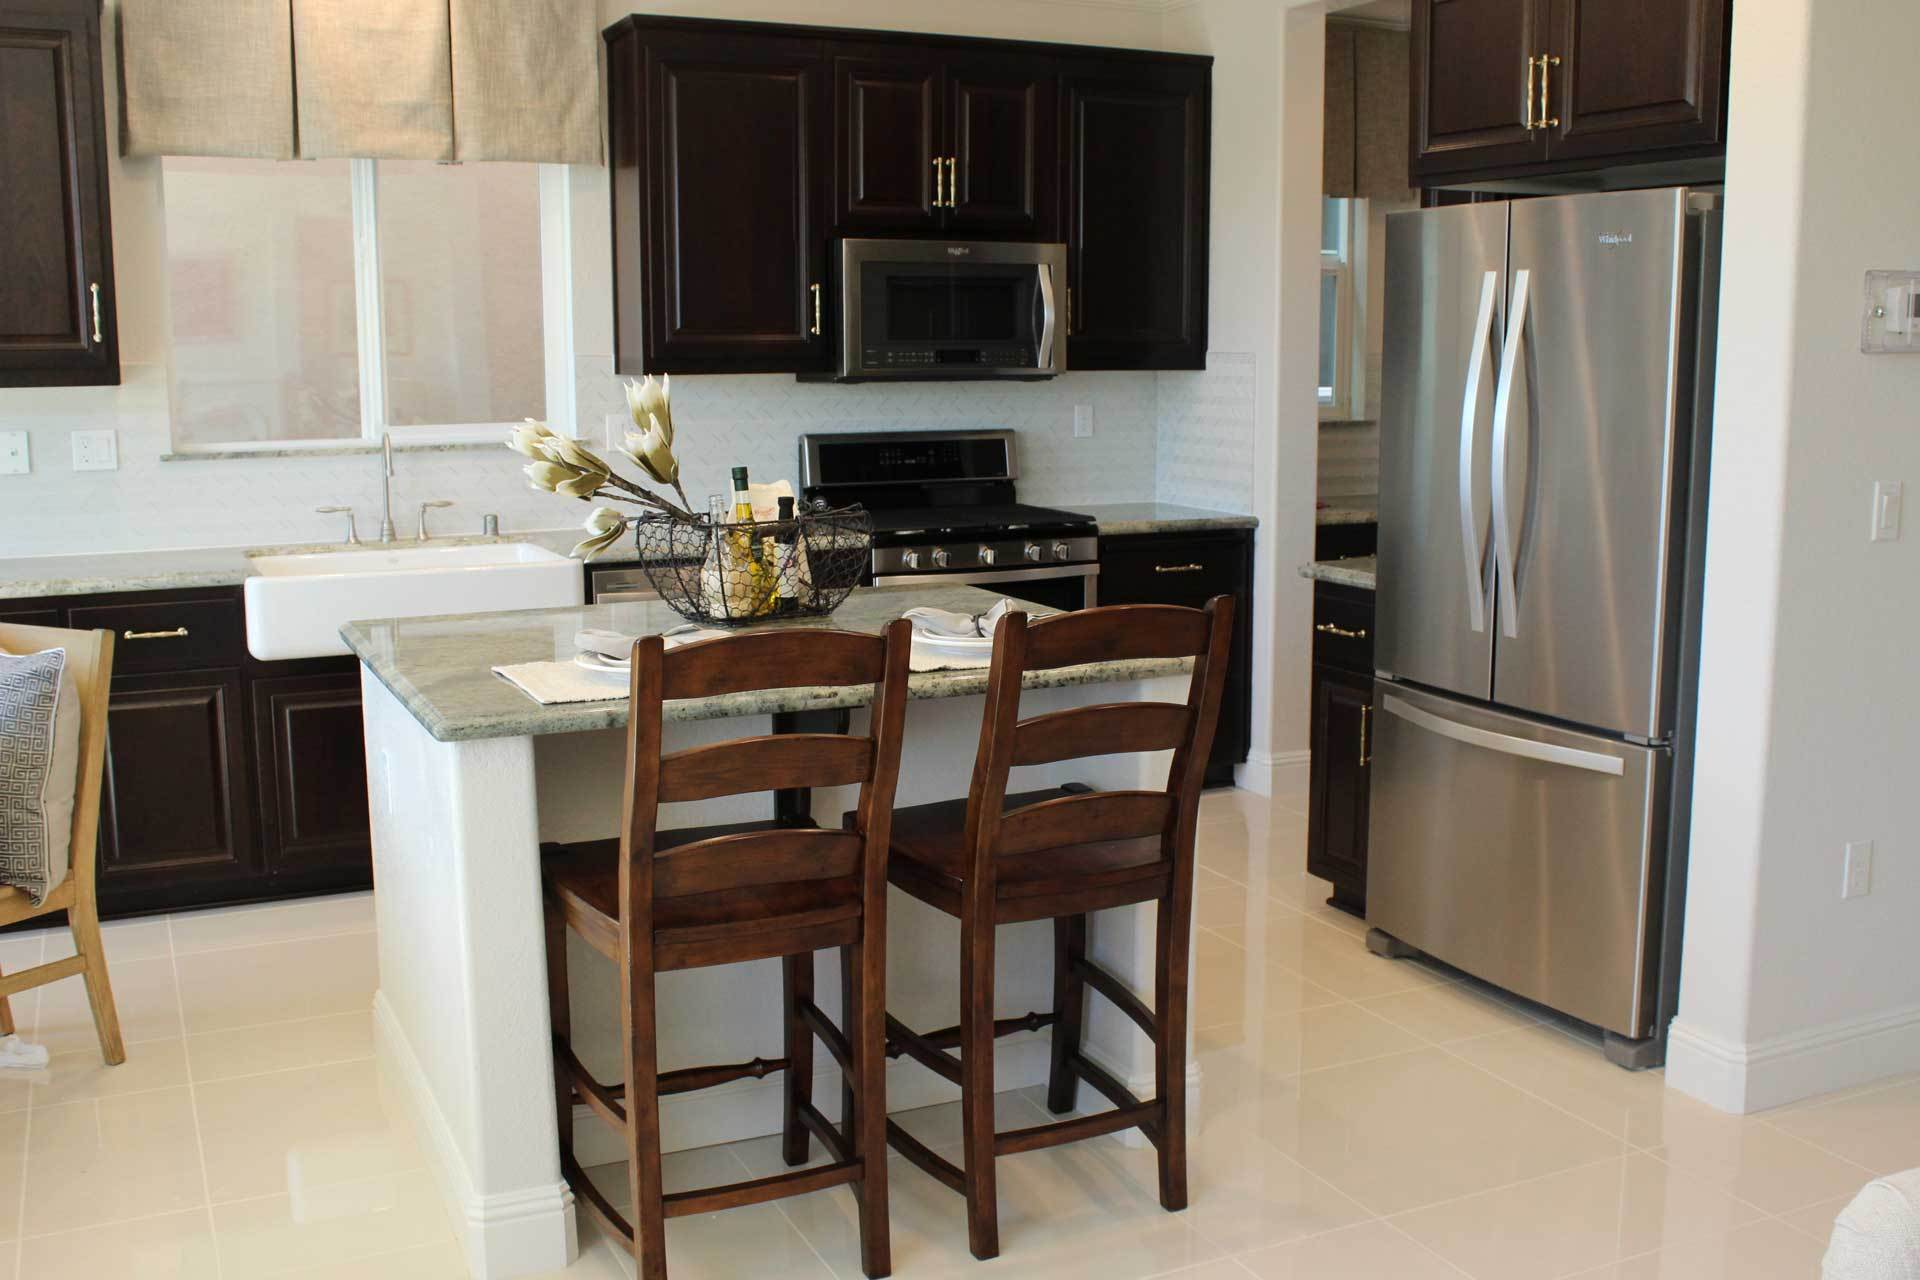 Kitchen featured in the Donato By Seeno Homes in Oakland-Alameda, CA